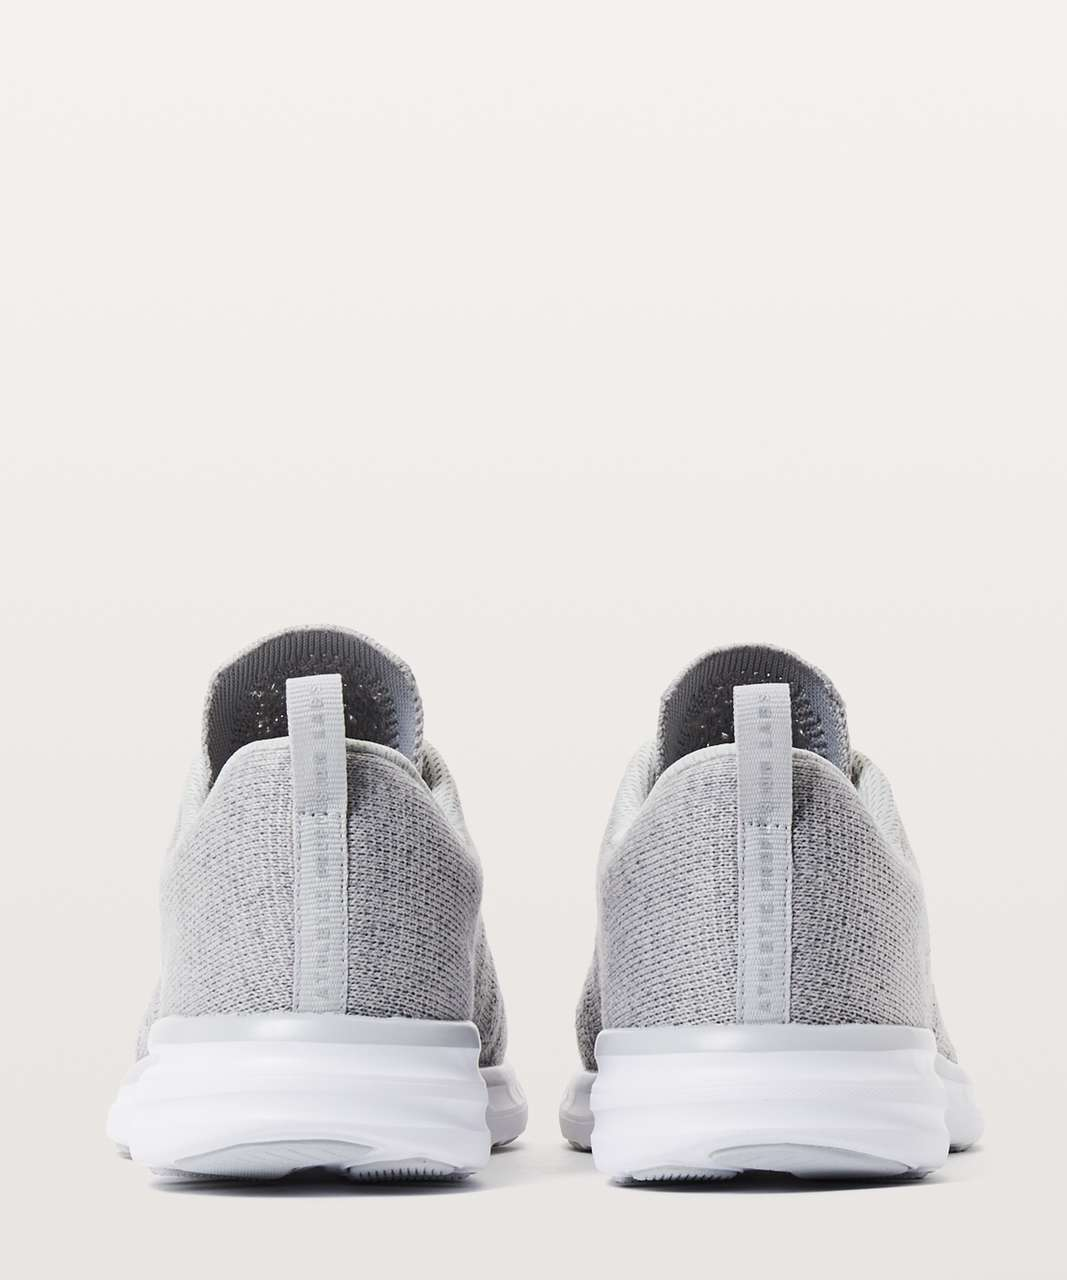 Lululemon Womens TechLoom Pro Shoe *Cashmere - Heather Grey